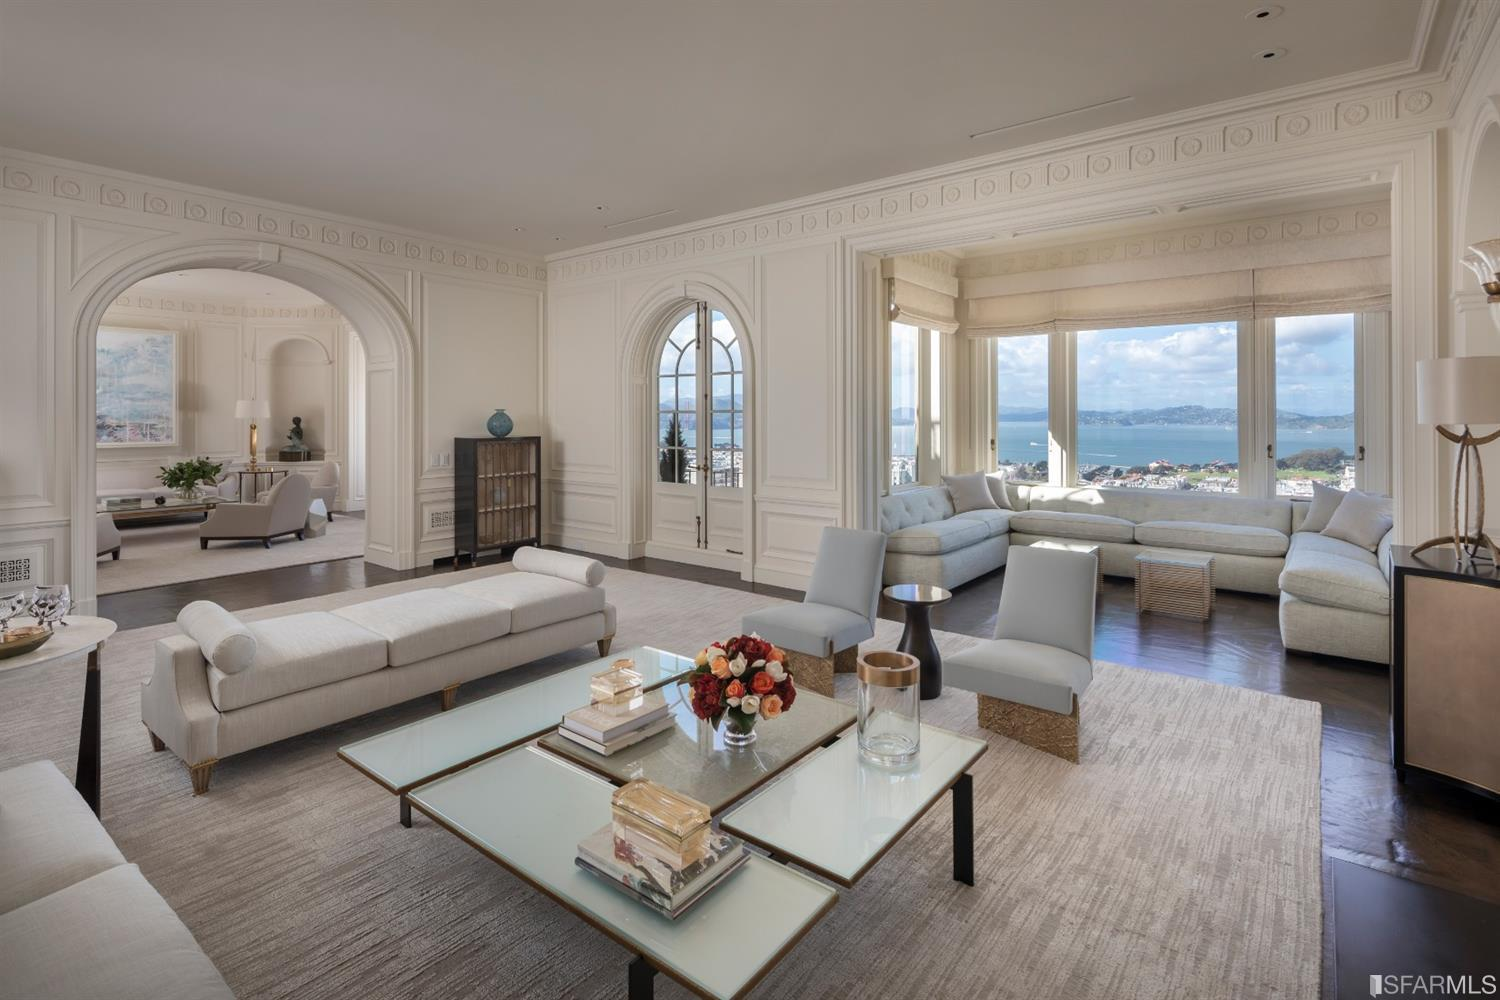 This 2 level beautifully renovated Penthouse at the esteemed 2000 Washington Street showcases sweeping views from the Golden Gate Bridge to Russian Hill. Sophistication is found at every moment, from the prominent entry hall with sweeping stair and fireplace, to the nearly 50' long grand gallery framing Bay views. The large public rooms with panoramic views set the tone for entertaining. An upper level library/media room opens to a full-width rooftop terrace with spectacular views of the GGB & Alcatraz.